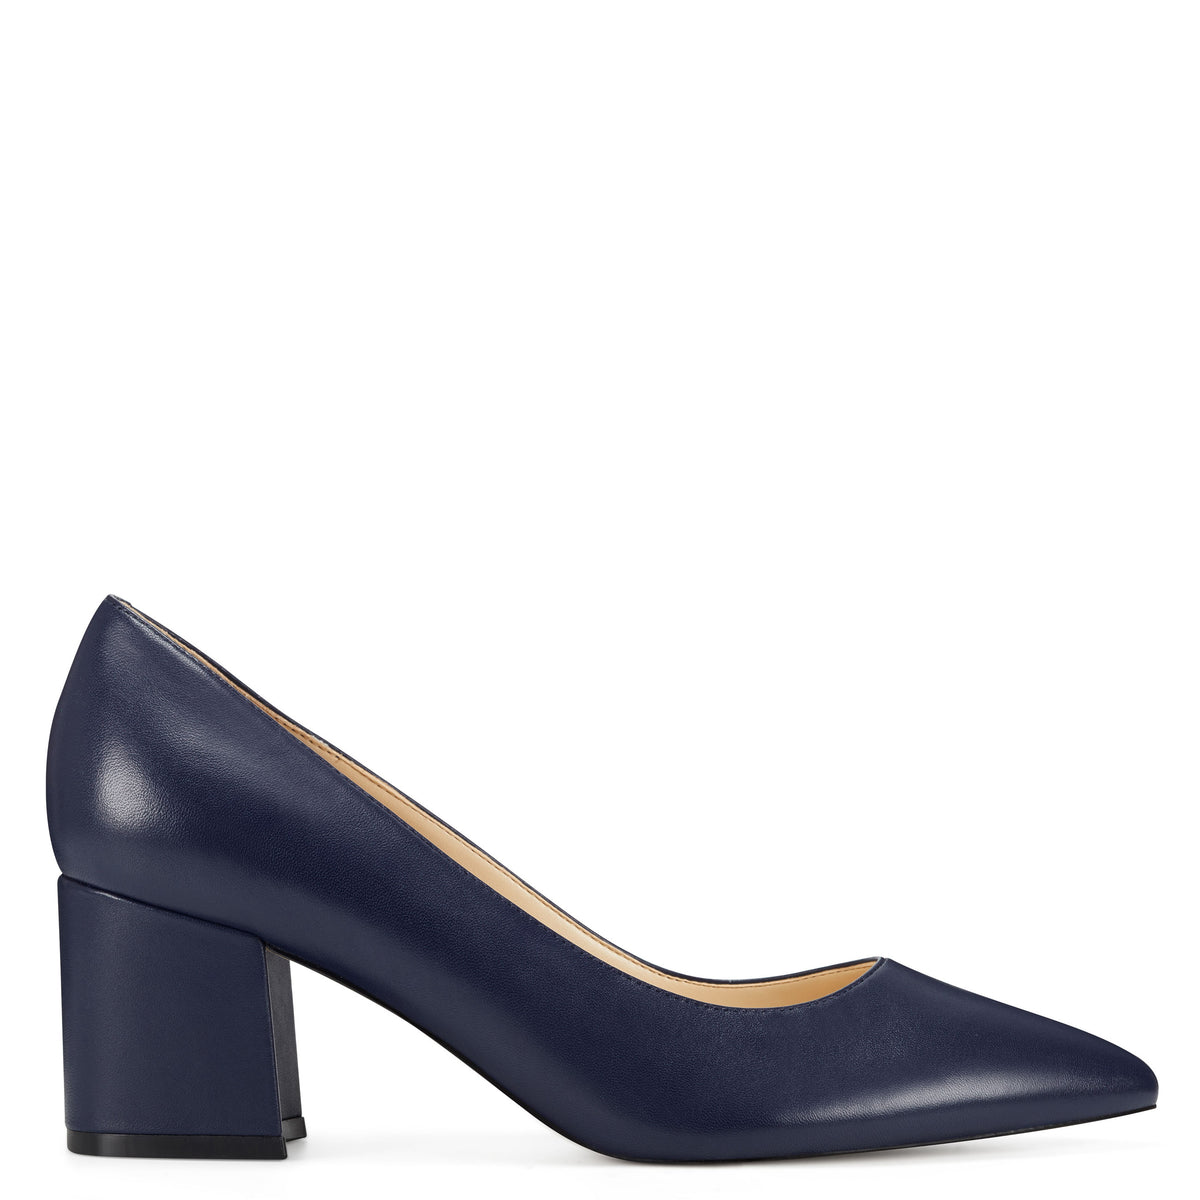 Tves Dress Pumps